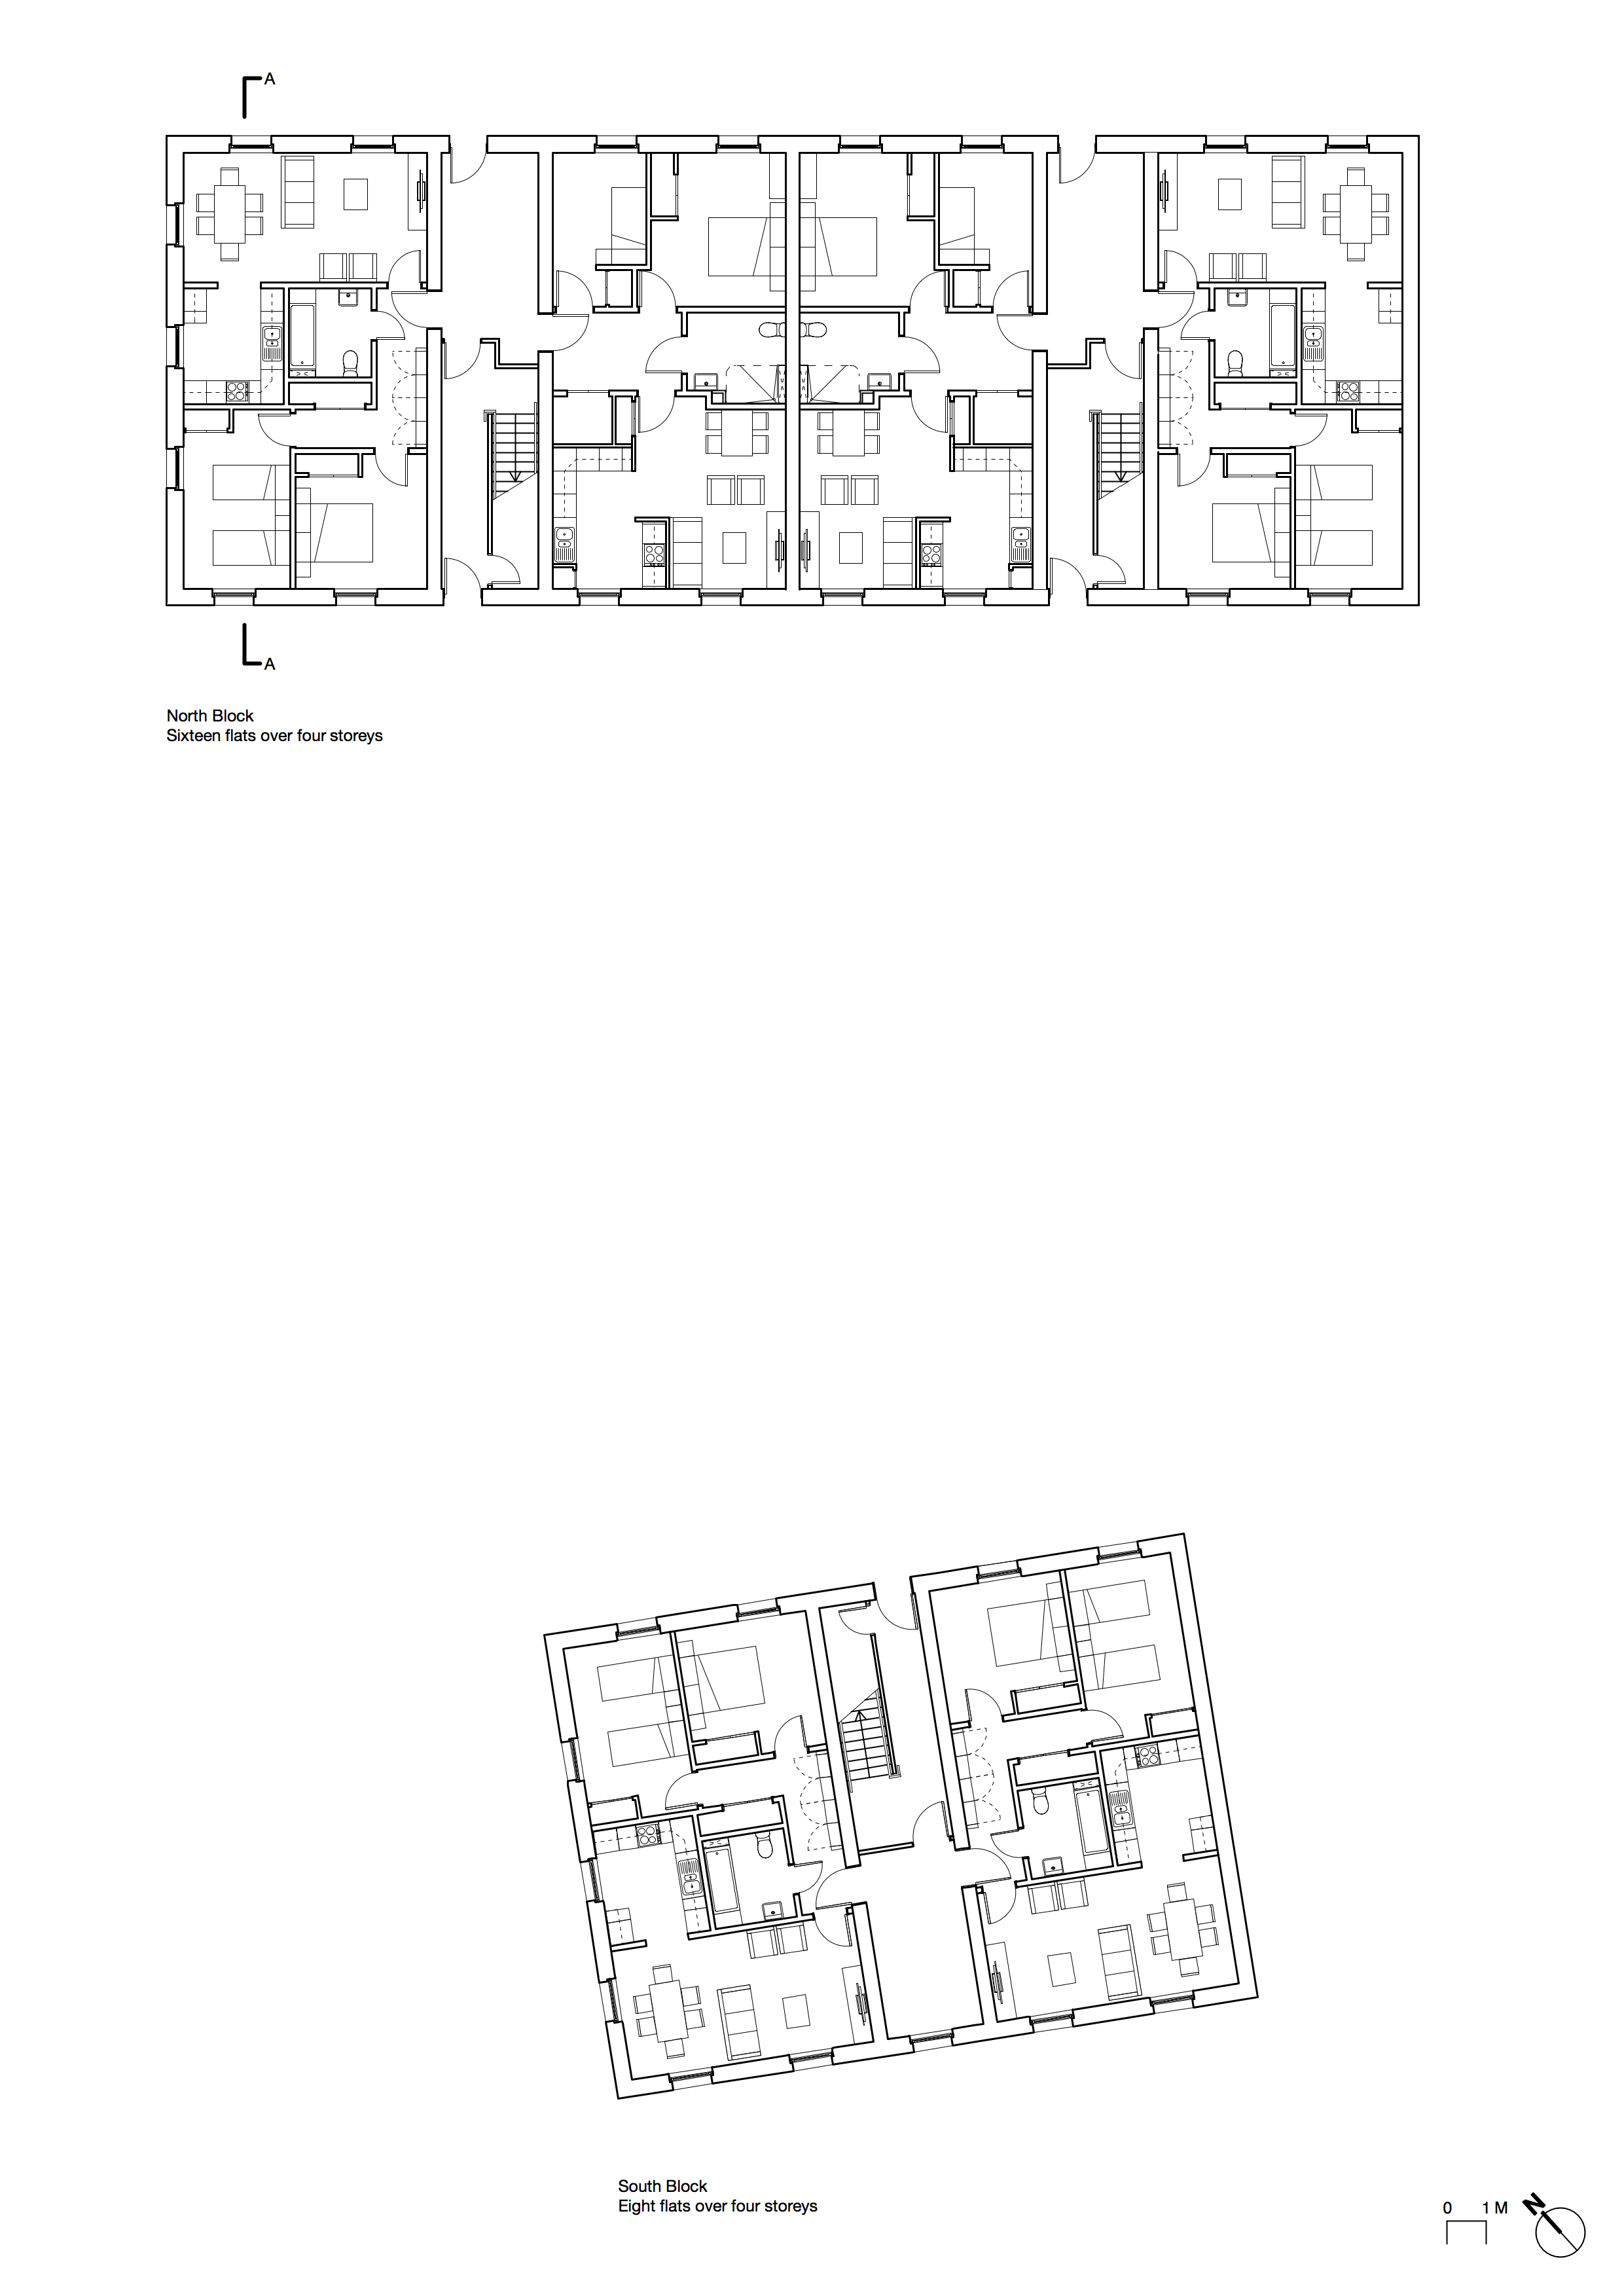 ARP-002A-SITE PLAN- Anotated.JPG